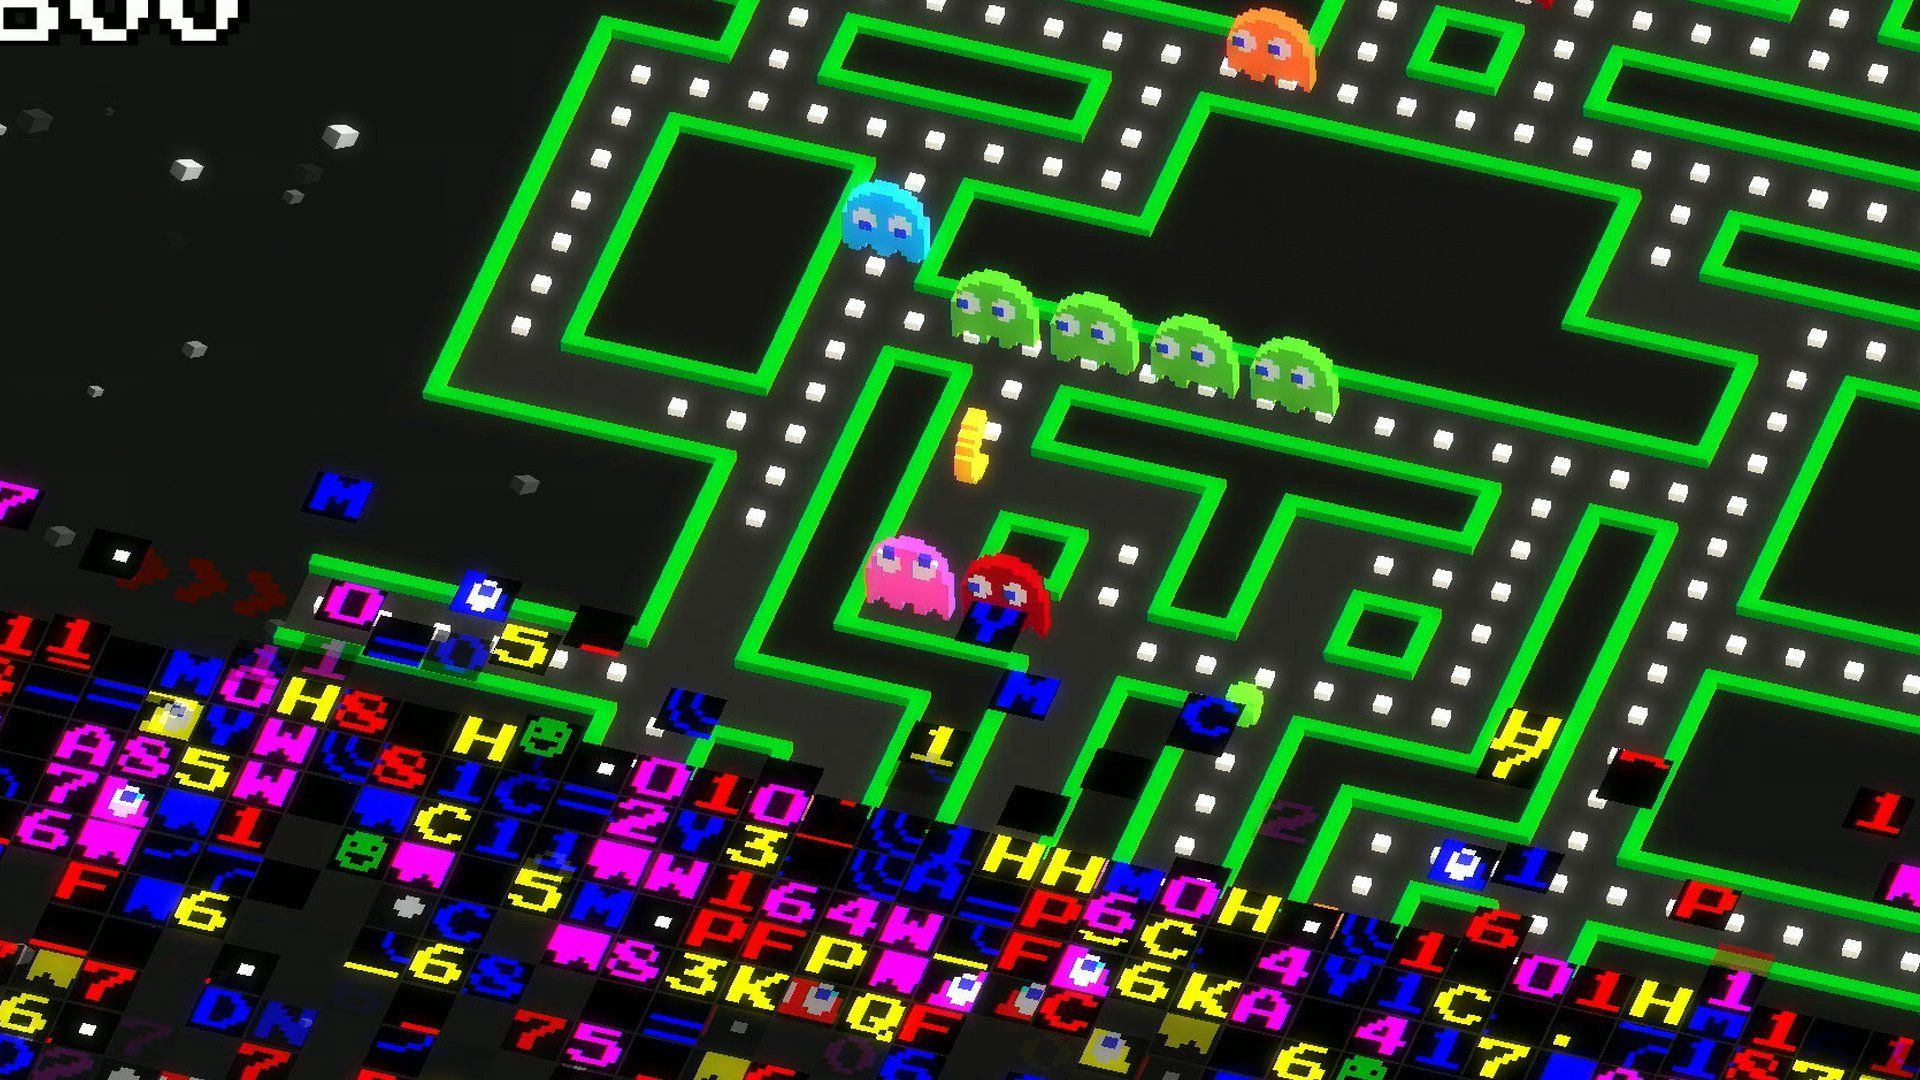 Design This Home Cheats 2015 Arcade Game Pac Man 256 Now Available On The App Store